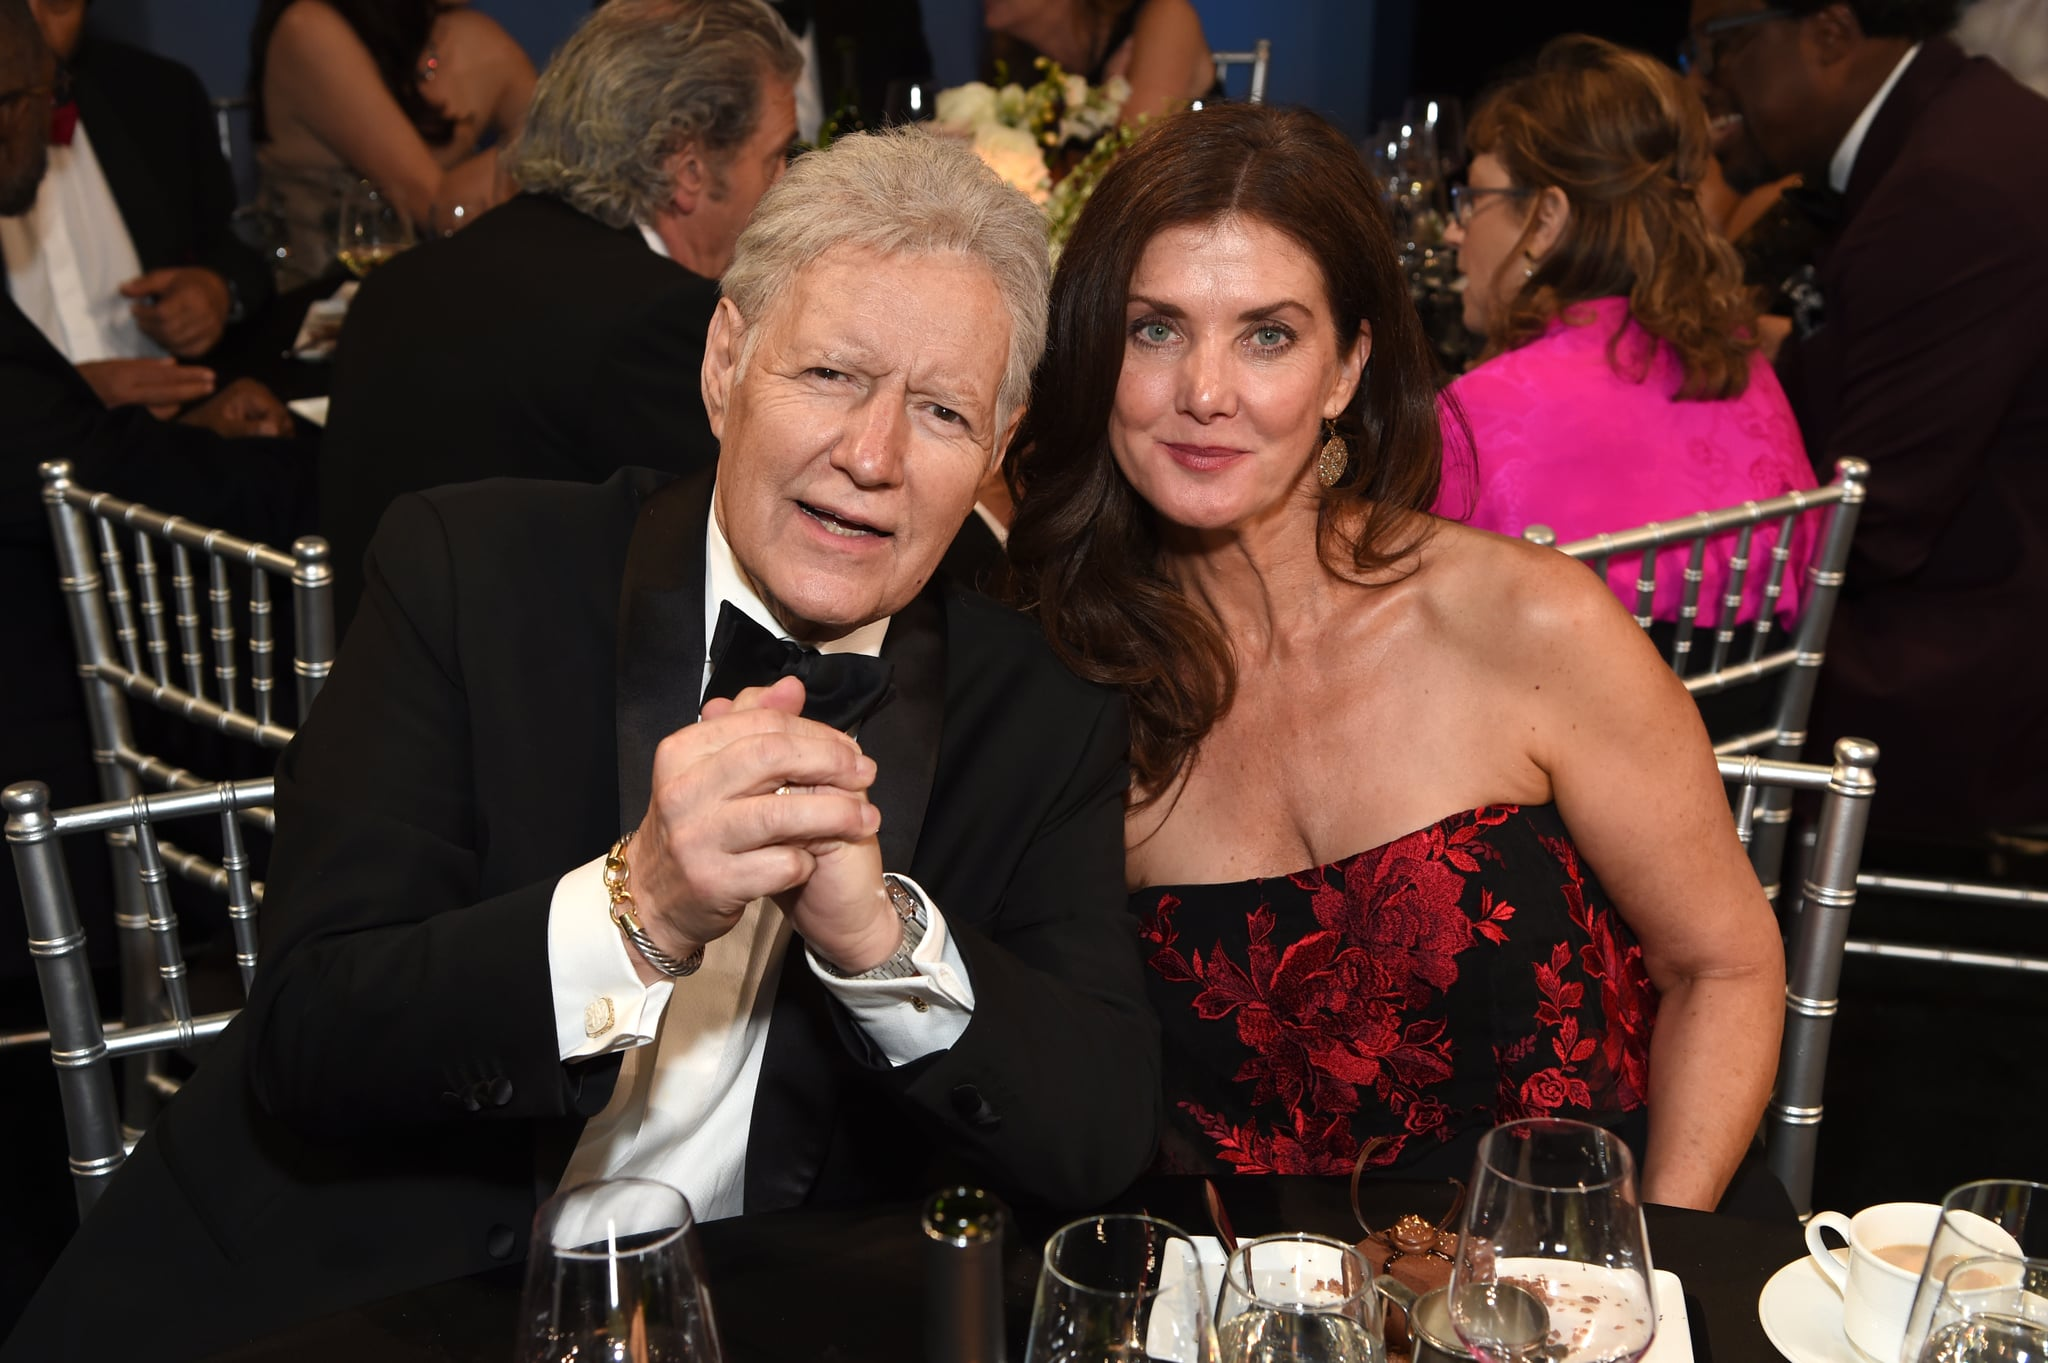 HOLLYWOOD, CALIFORNIA - JUNE 06: (L-R) Alex Trebek and Jean Currivan Trebek attend the 47th AFI Life Achievement Award honouring Denzel Washington at Dolby Theatre on June 06, 2019 in Hollywood, California. (Photo by Michael Kovac/Getty Images for AFI)